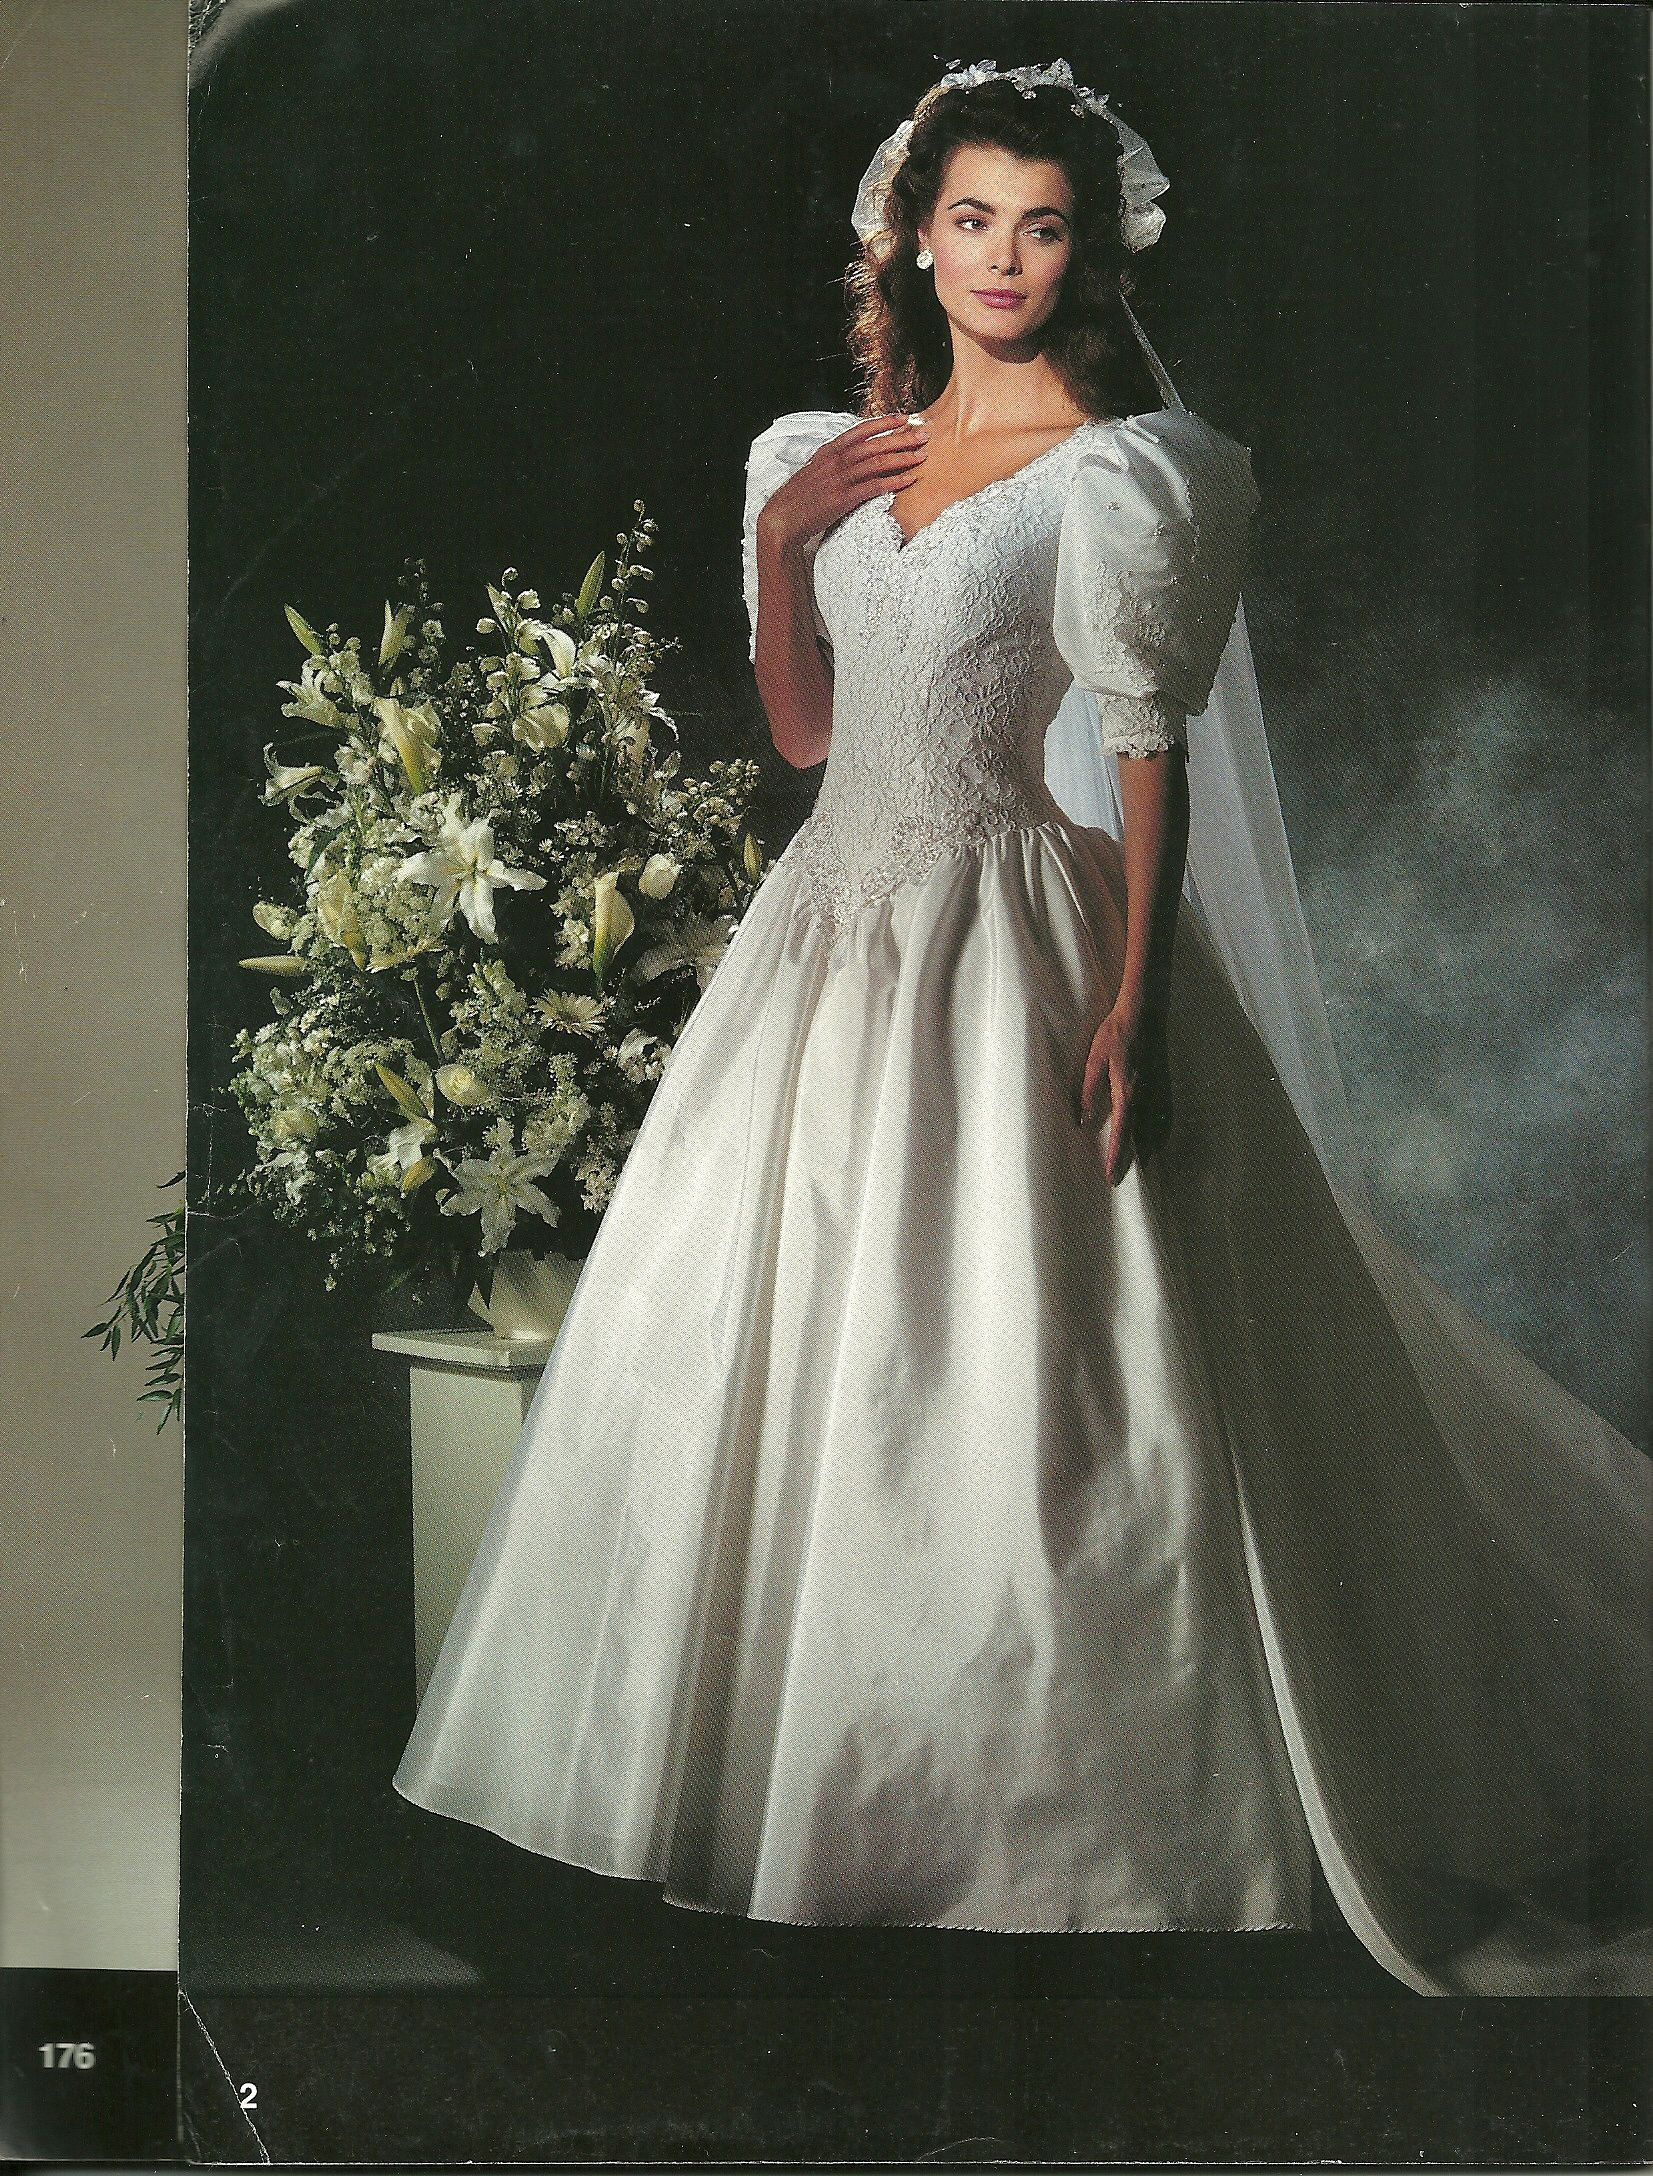 Such a classic How many of you recognise this 90s wedding dress